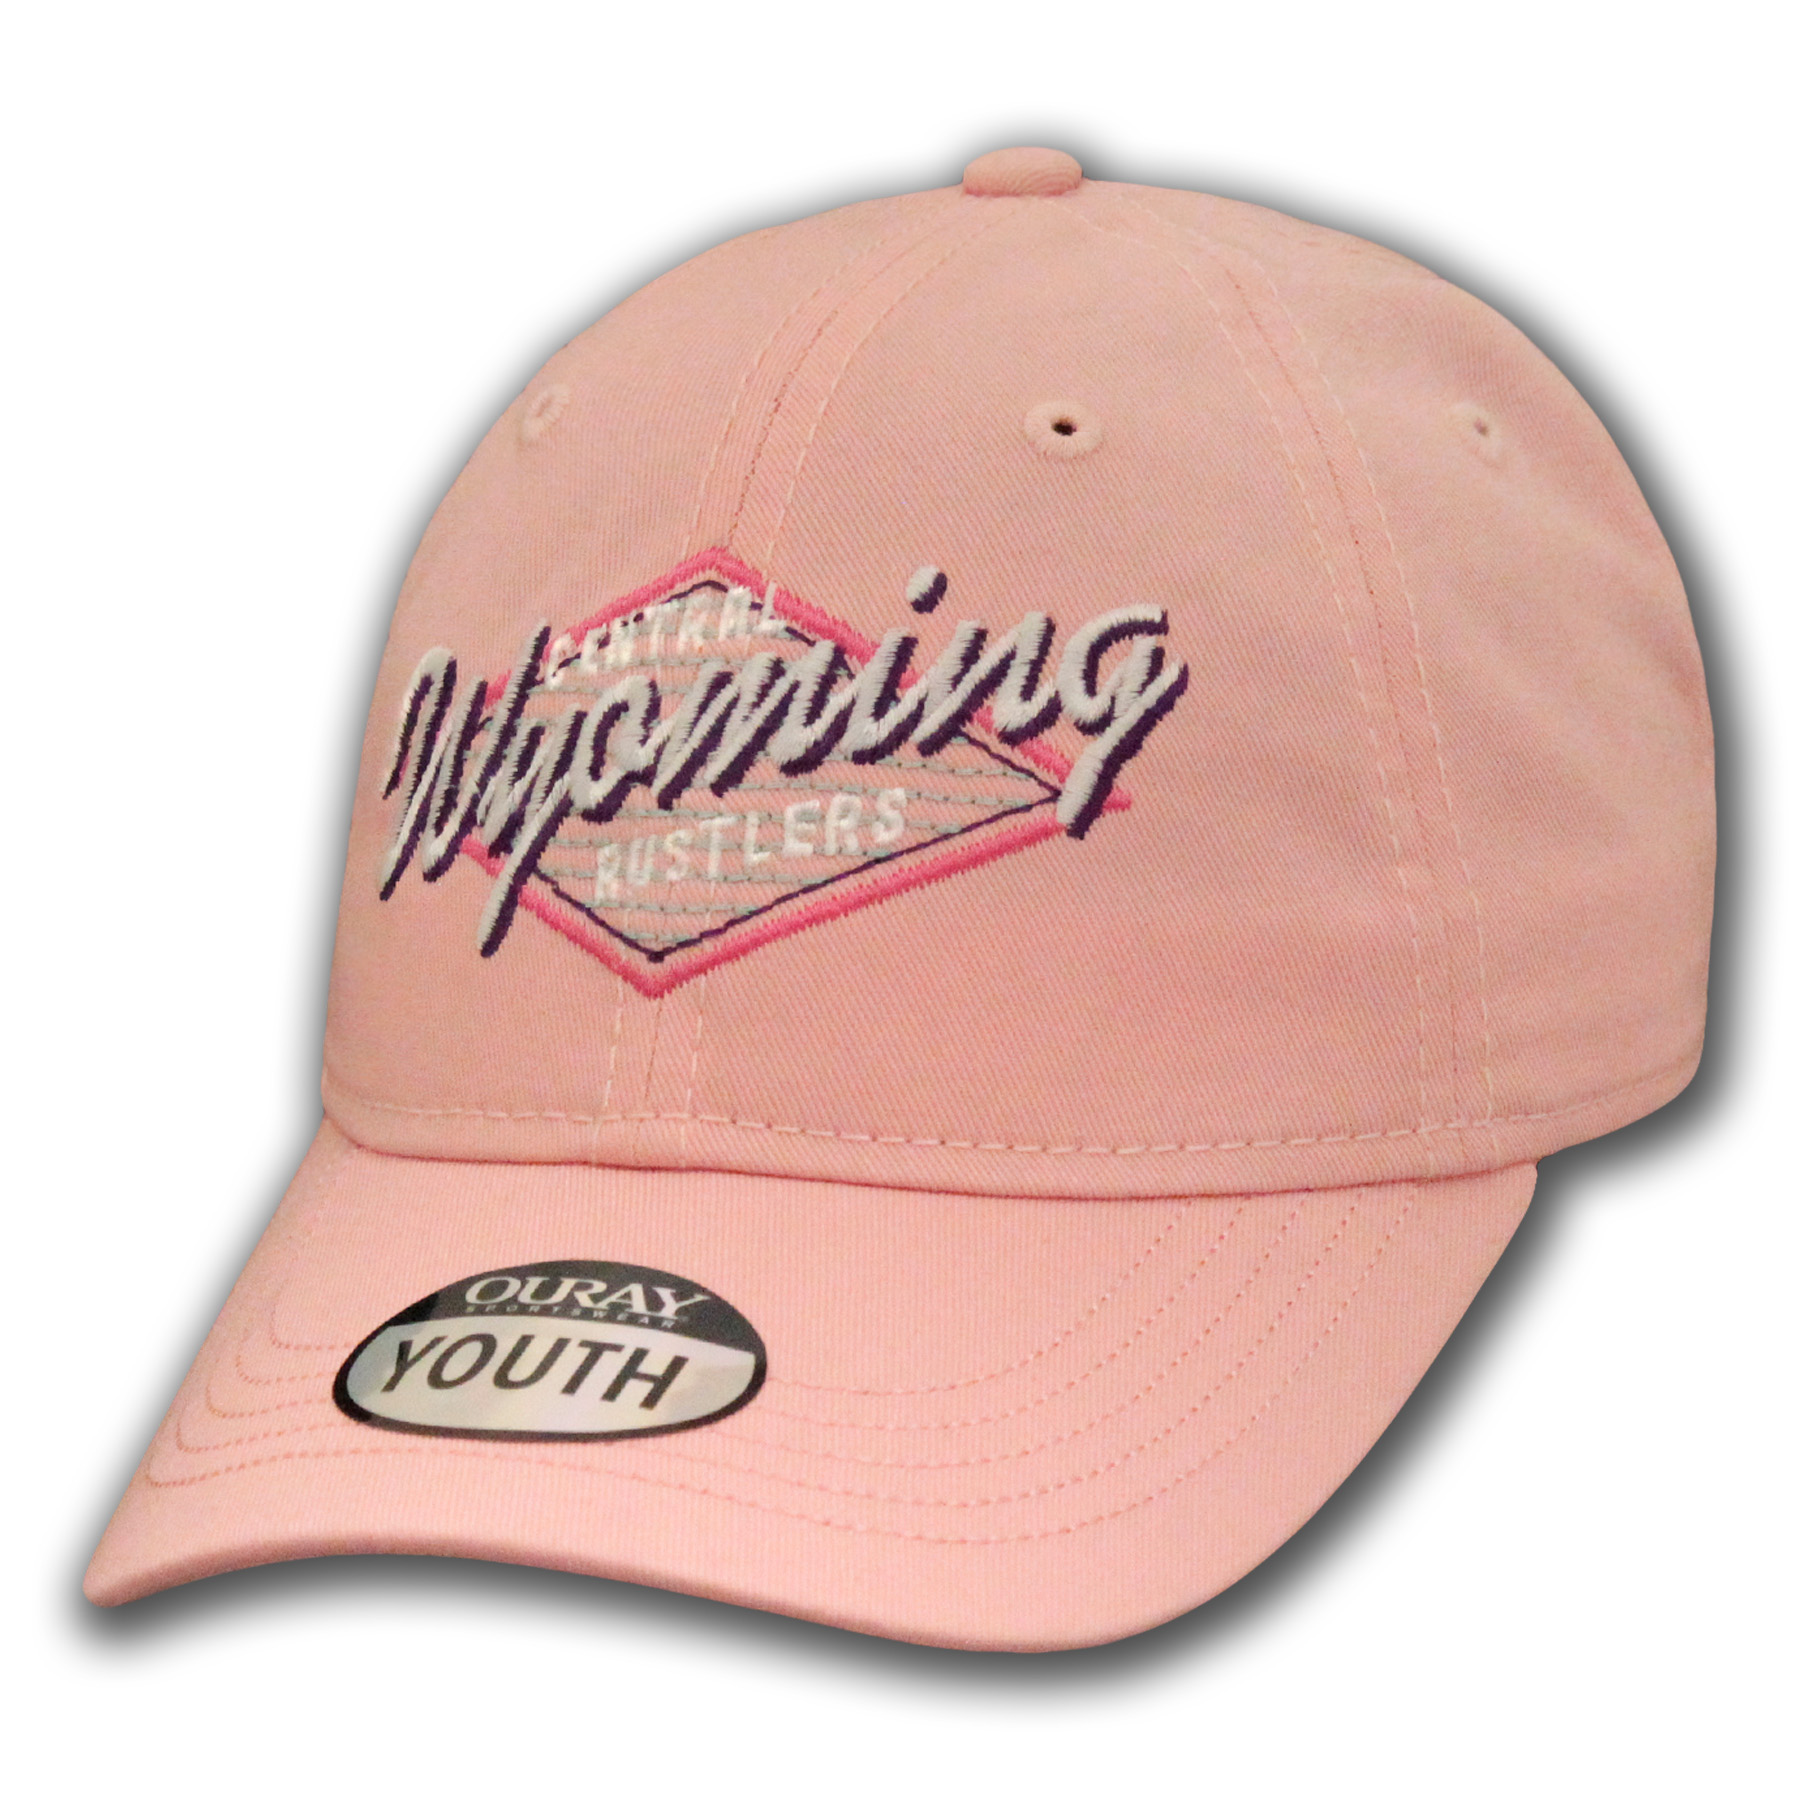 Central Wyoming Rustler's Little Girl's Baseball Cap